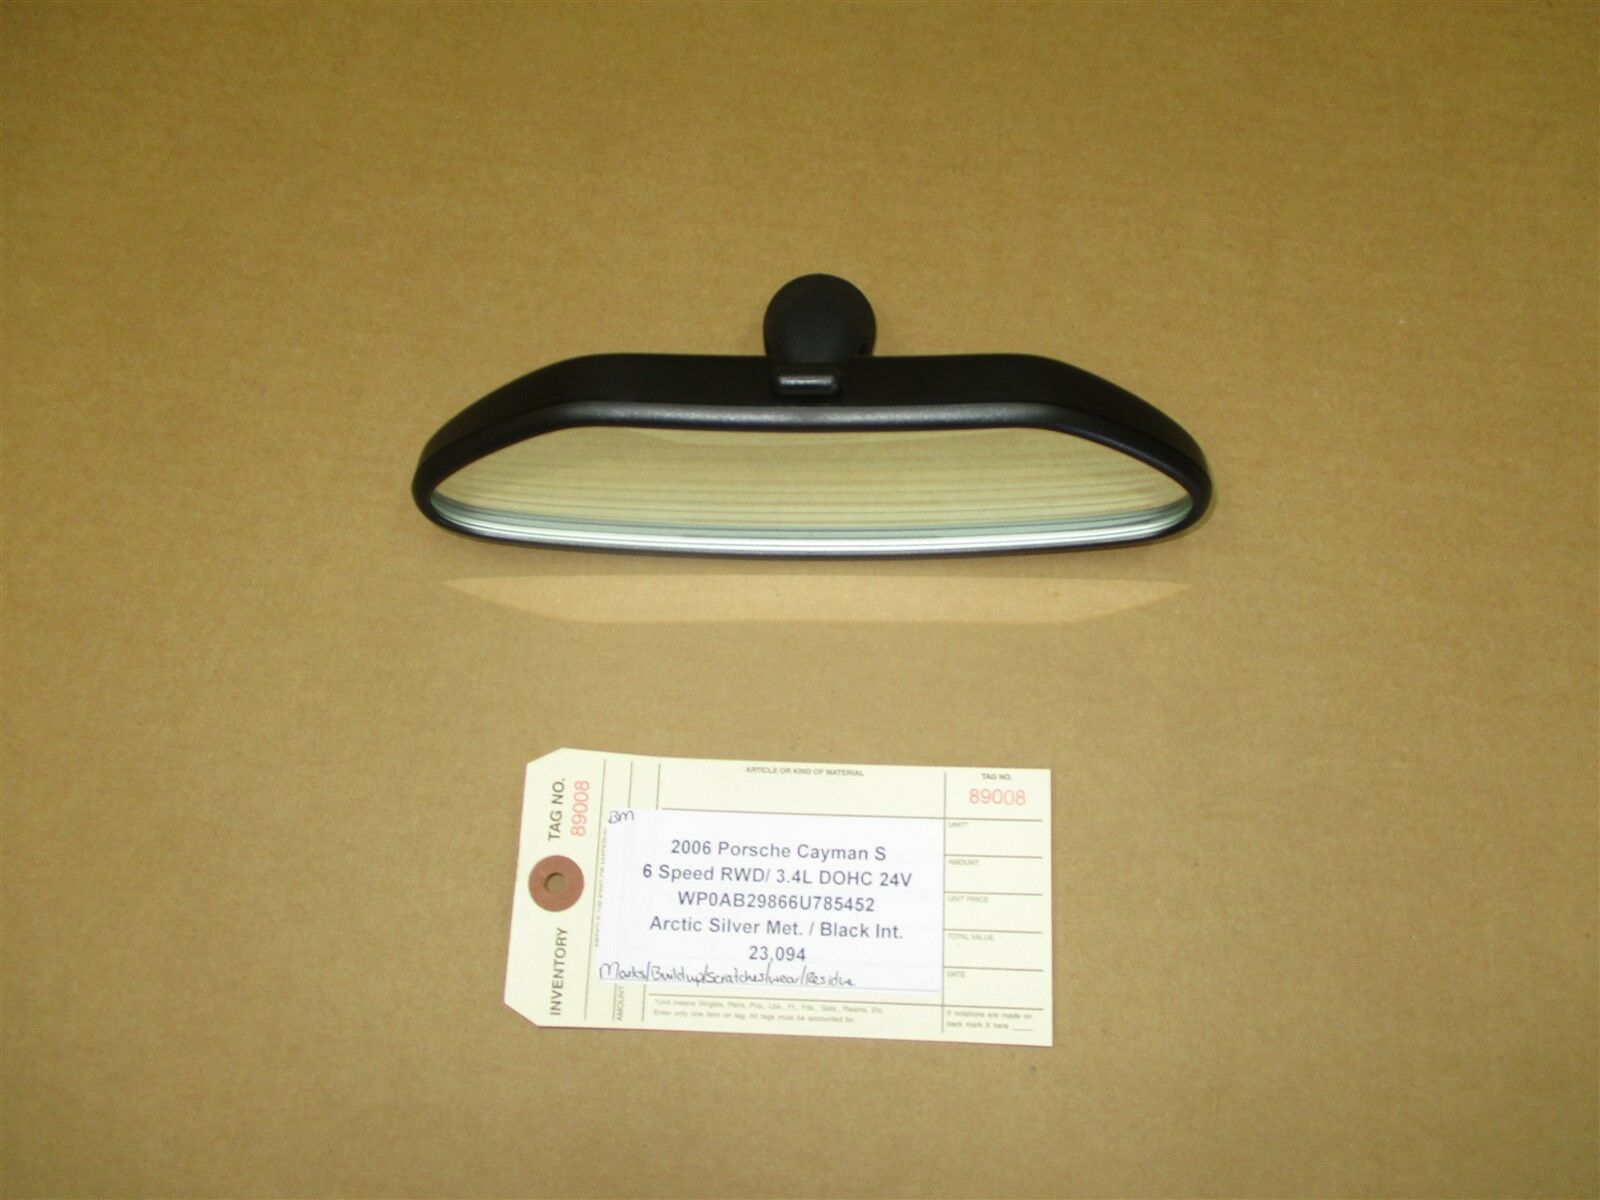 06 Cayman S RWD Porsche 987 INTERIOR REAR VIEW MIRROR HOUSING 99673151100 23,094